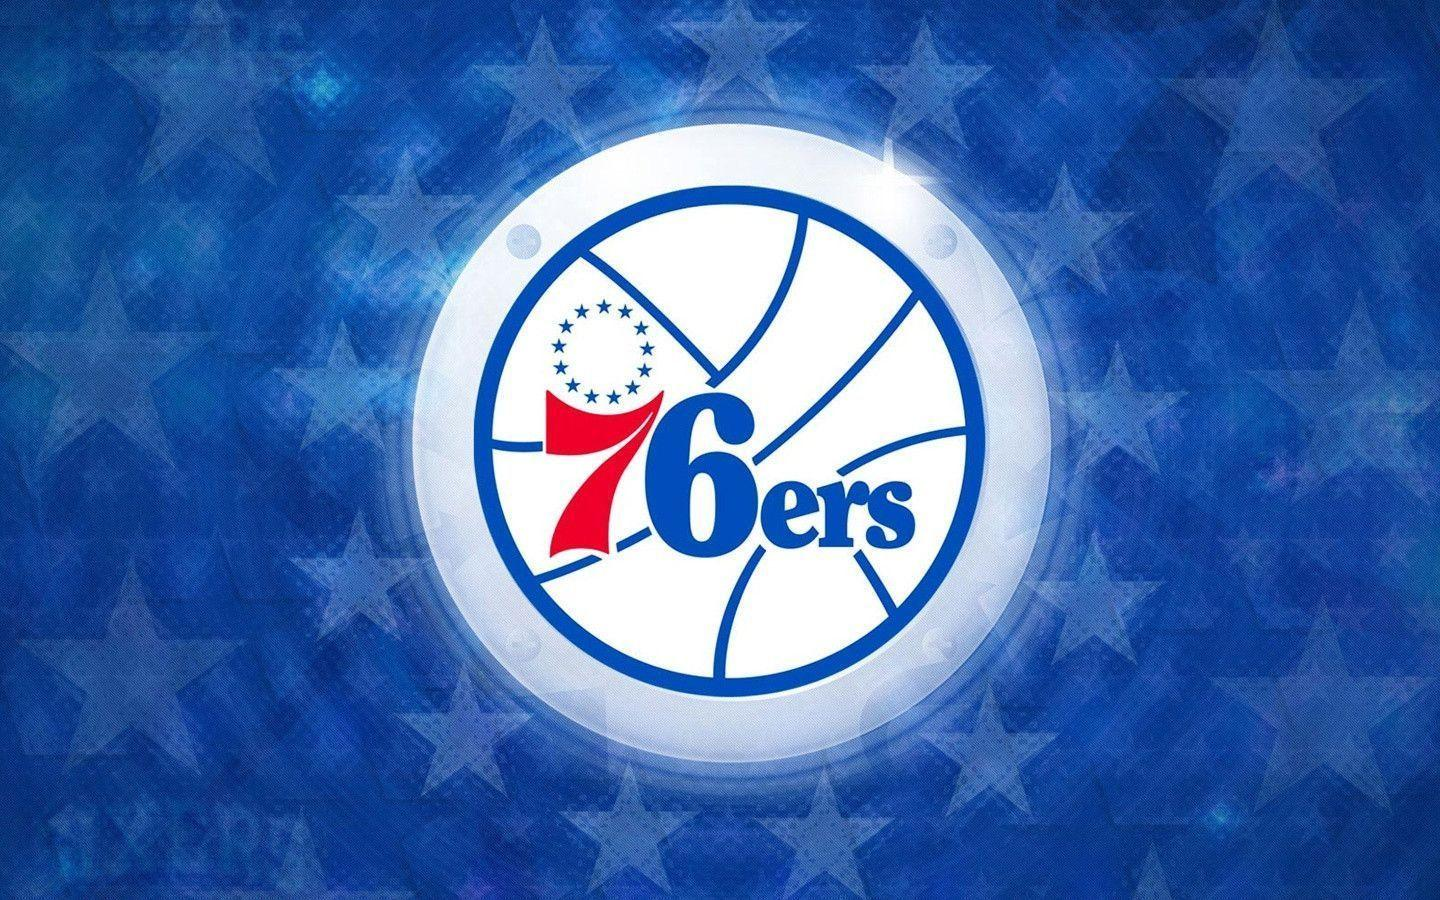 76ers: 76ers Wallpapers